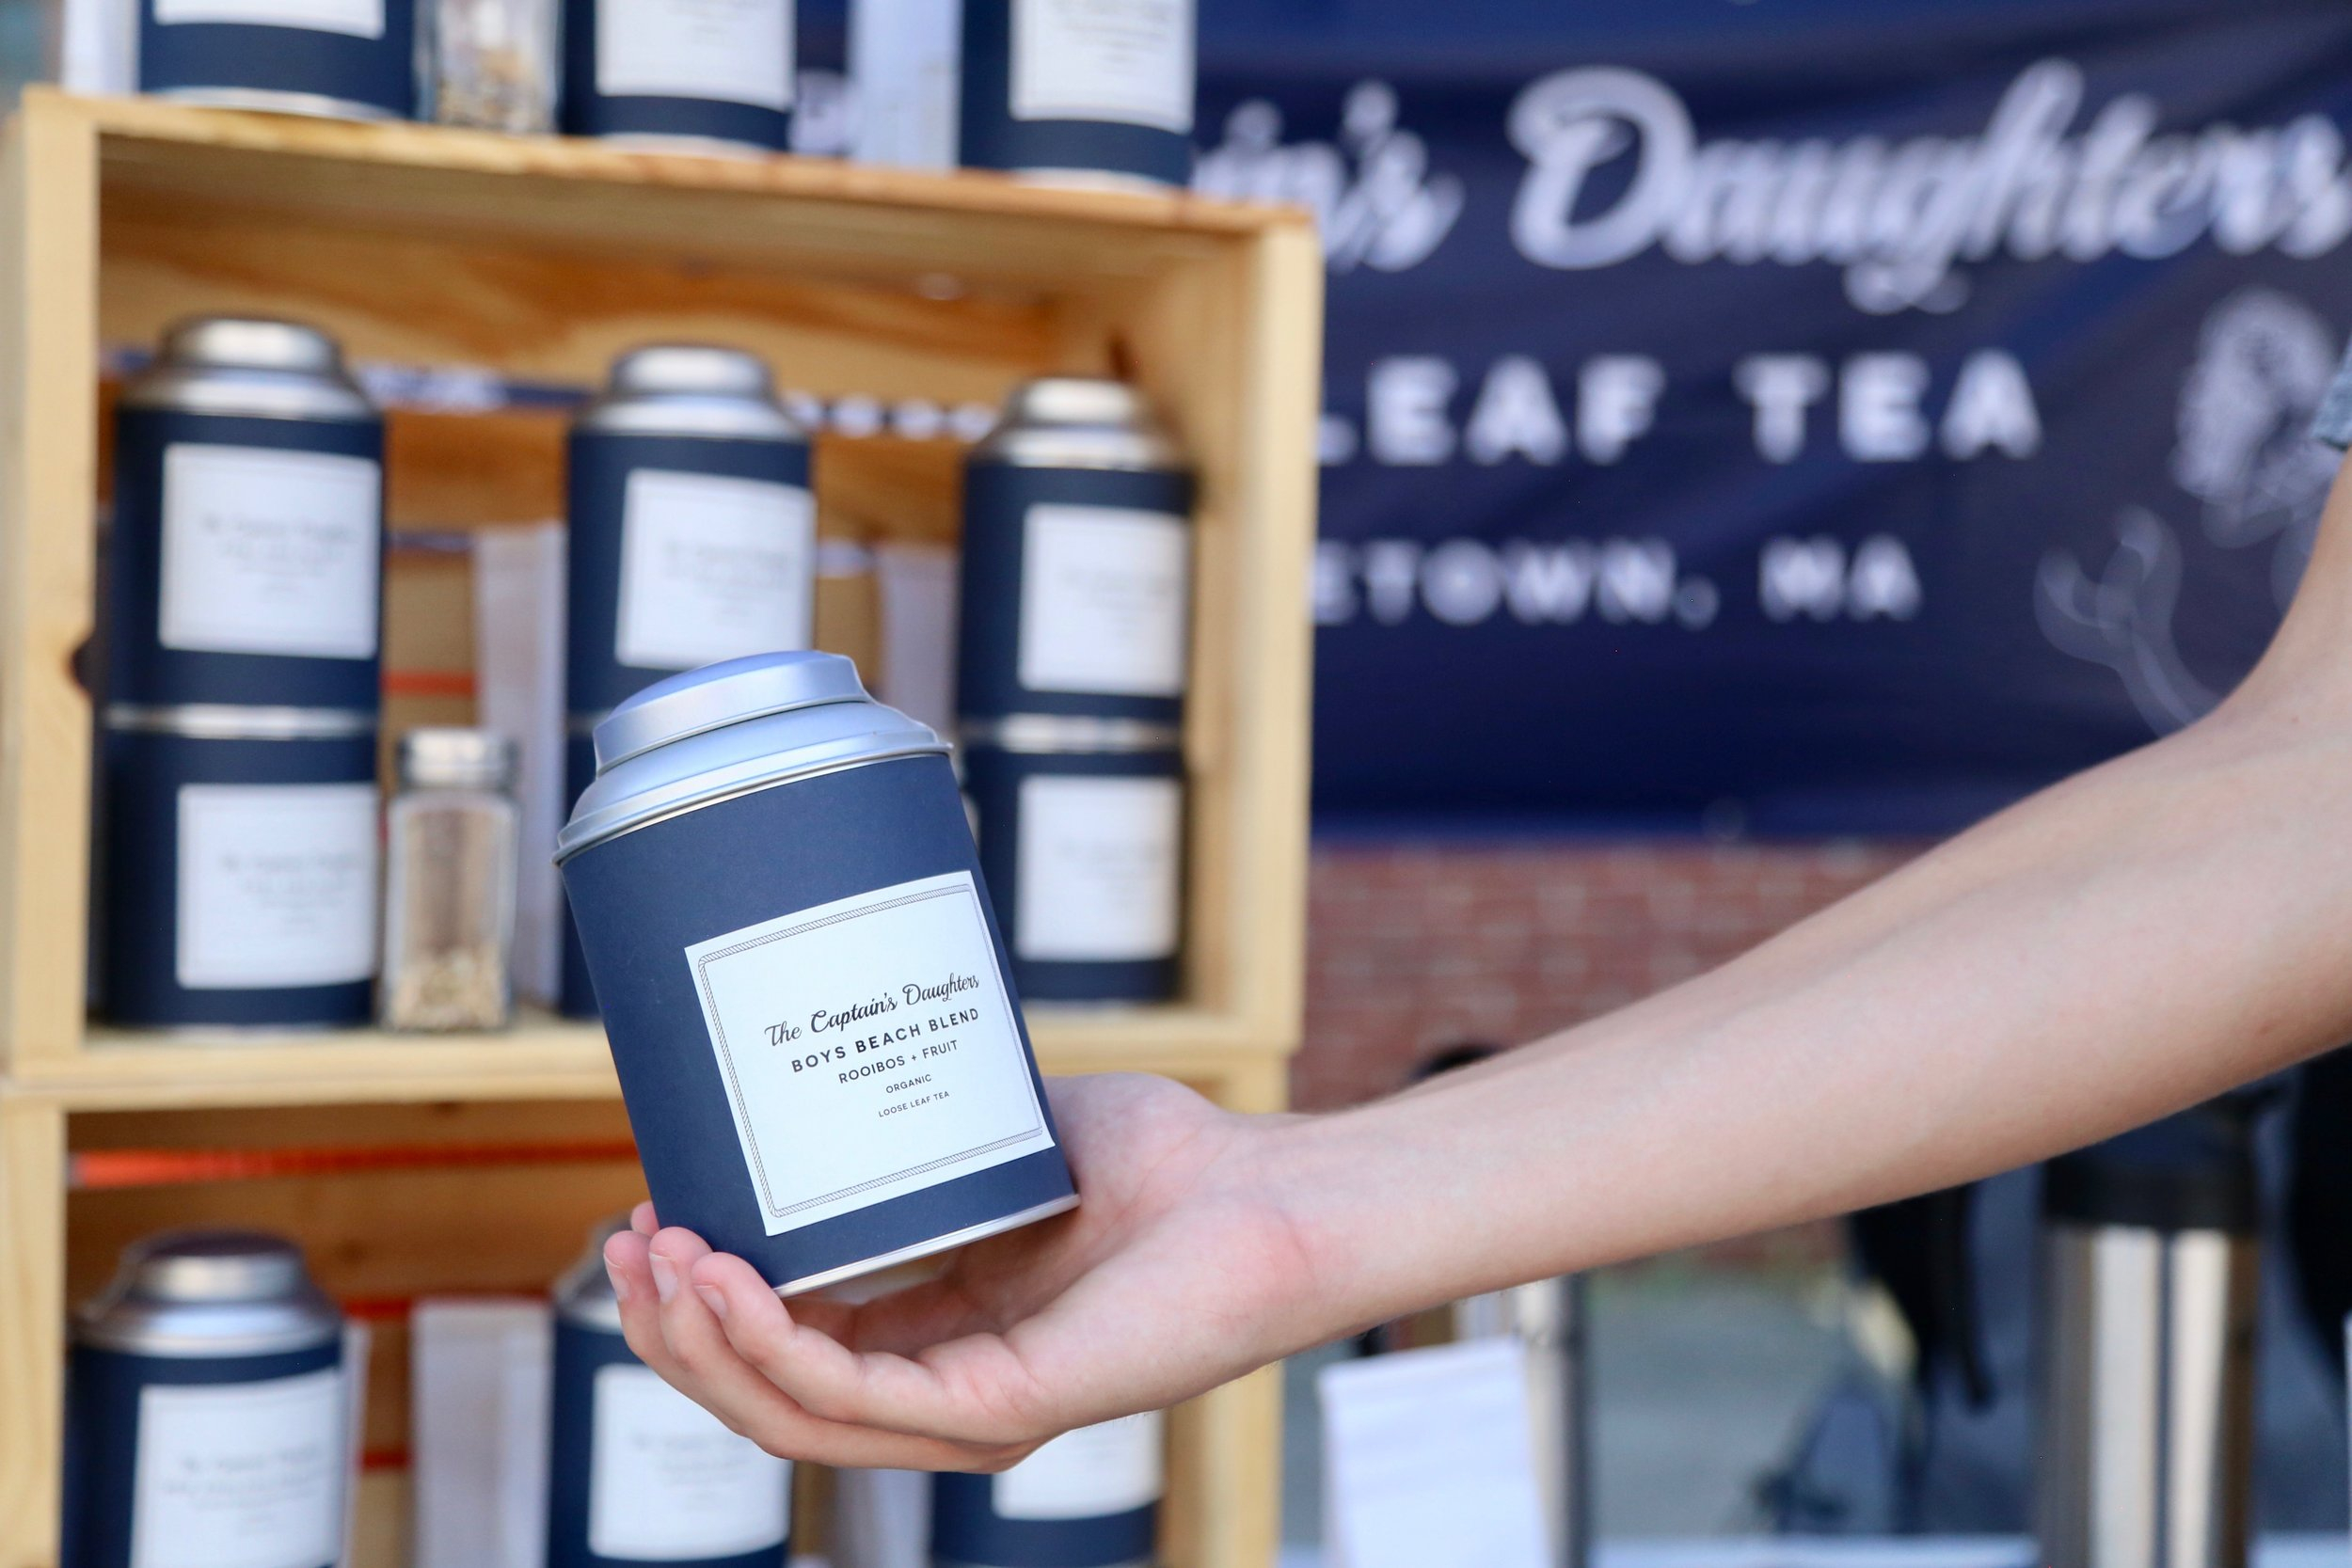 The Captian's Daughter - Try their tea iced! You can serve it over ice, with a splash of seltzer, or with some frozen berries tossed in! Boys Beach Blend pairs particularly well with summer.